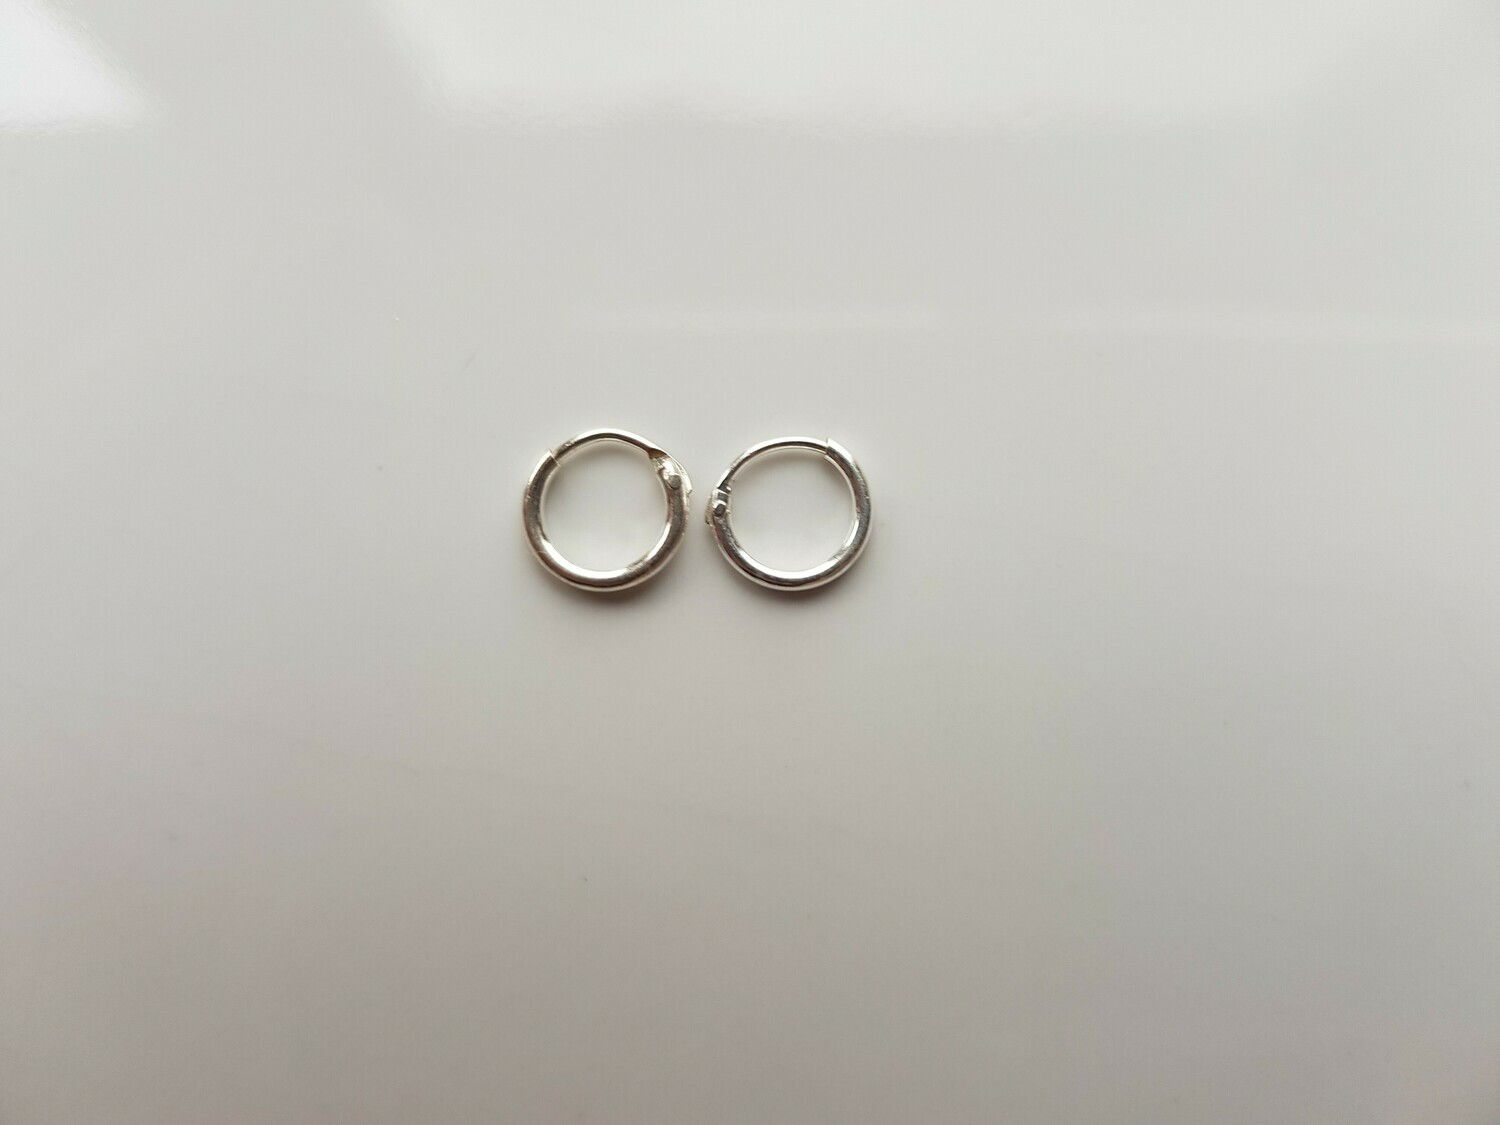 Oorringetjes 925 sterling zilver 6mm